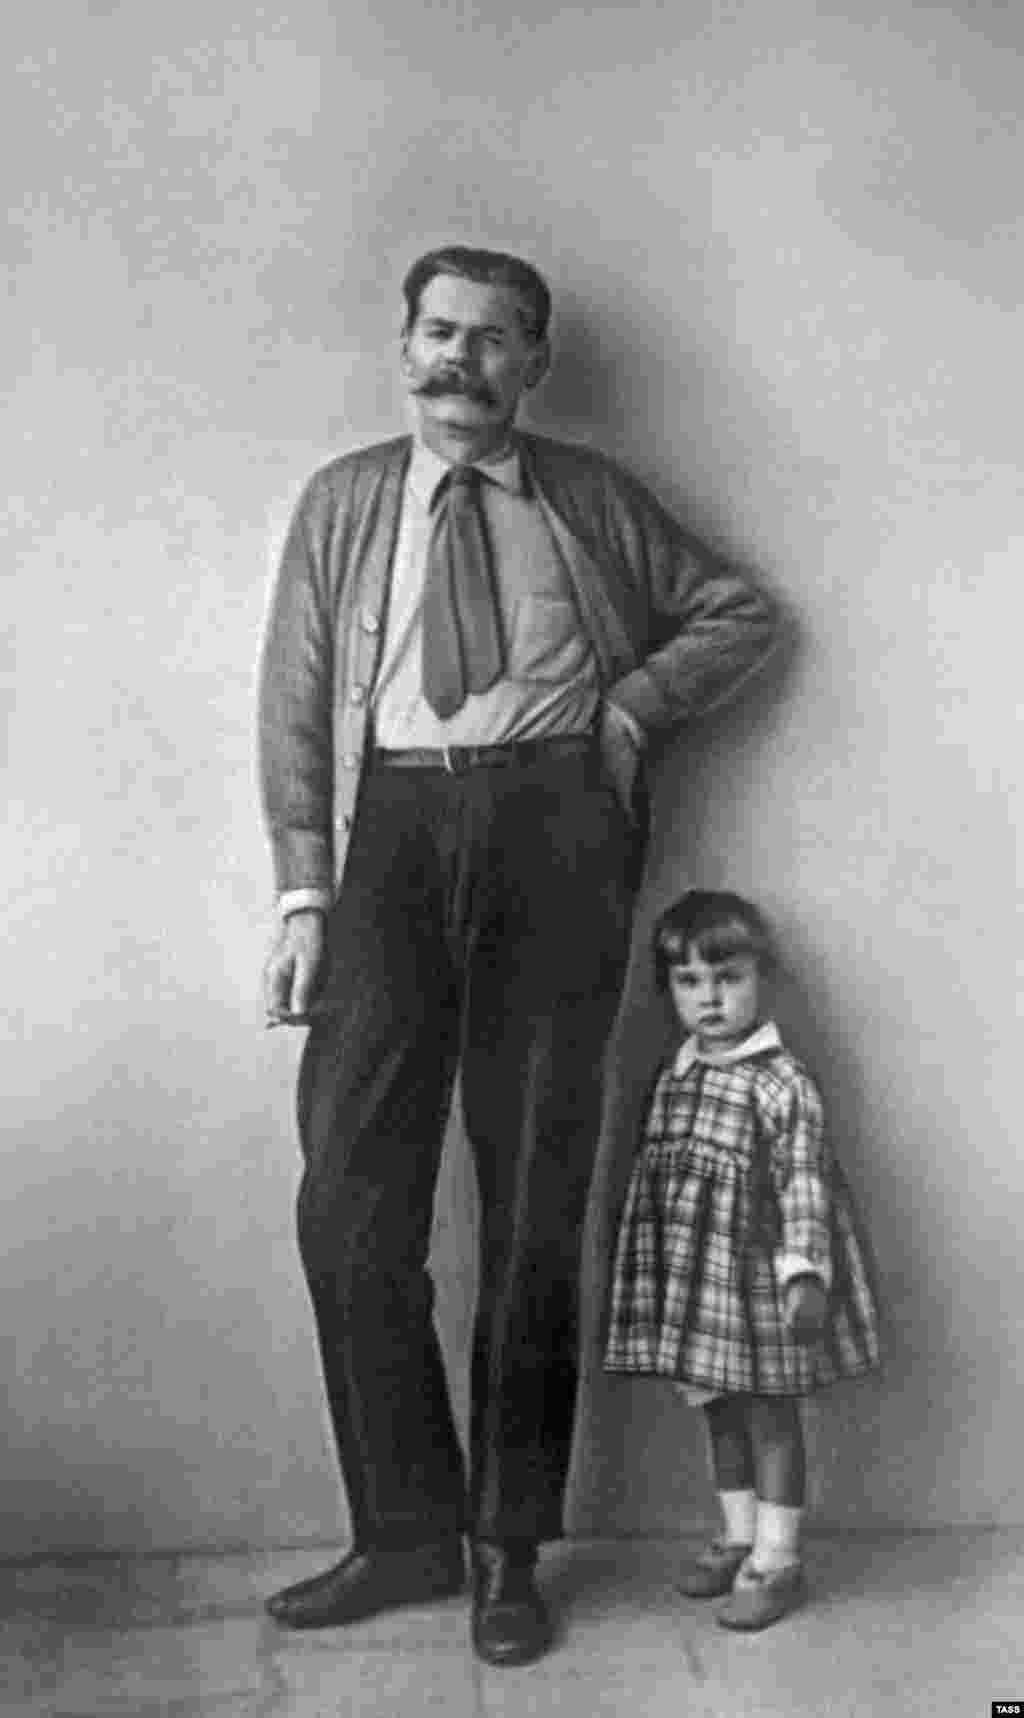 Writer Maksim Gorky posing with his granddaughter in 1928 - Early Soviet artists largely rejected the aesthetics of the prerevolutionary period, but many of them embraced the social sensibilities of late 19th-century realists, particularly Maksim Gorky. Gorky, however, was unsure about the revolution and lived in exile from 1921 until 1929. He was lionized by Soviet dictator Josef Stalin, who was one of his pallbearers when he died in 1936.